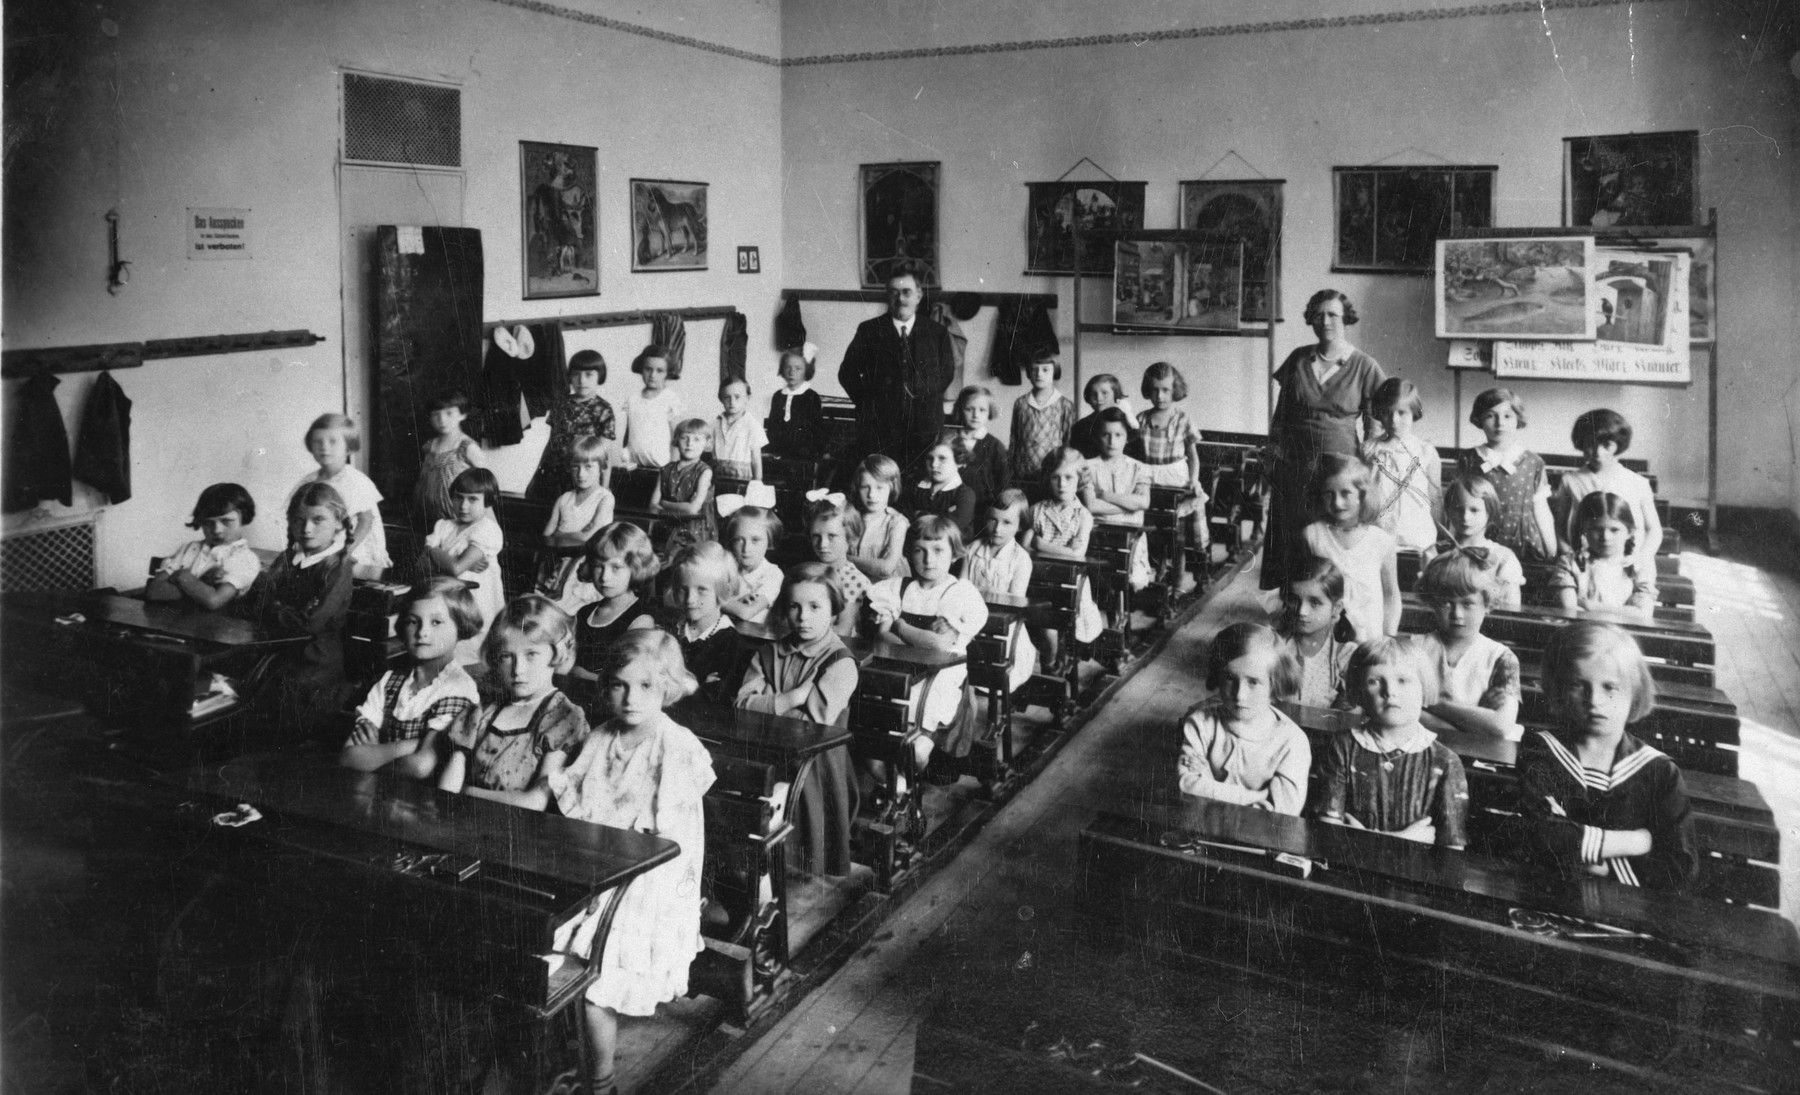 Class portrait of an elementary school class in Marienbad.  Among those pictured is Mimi Schleissner.